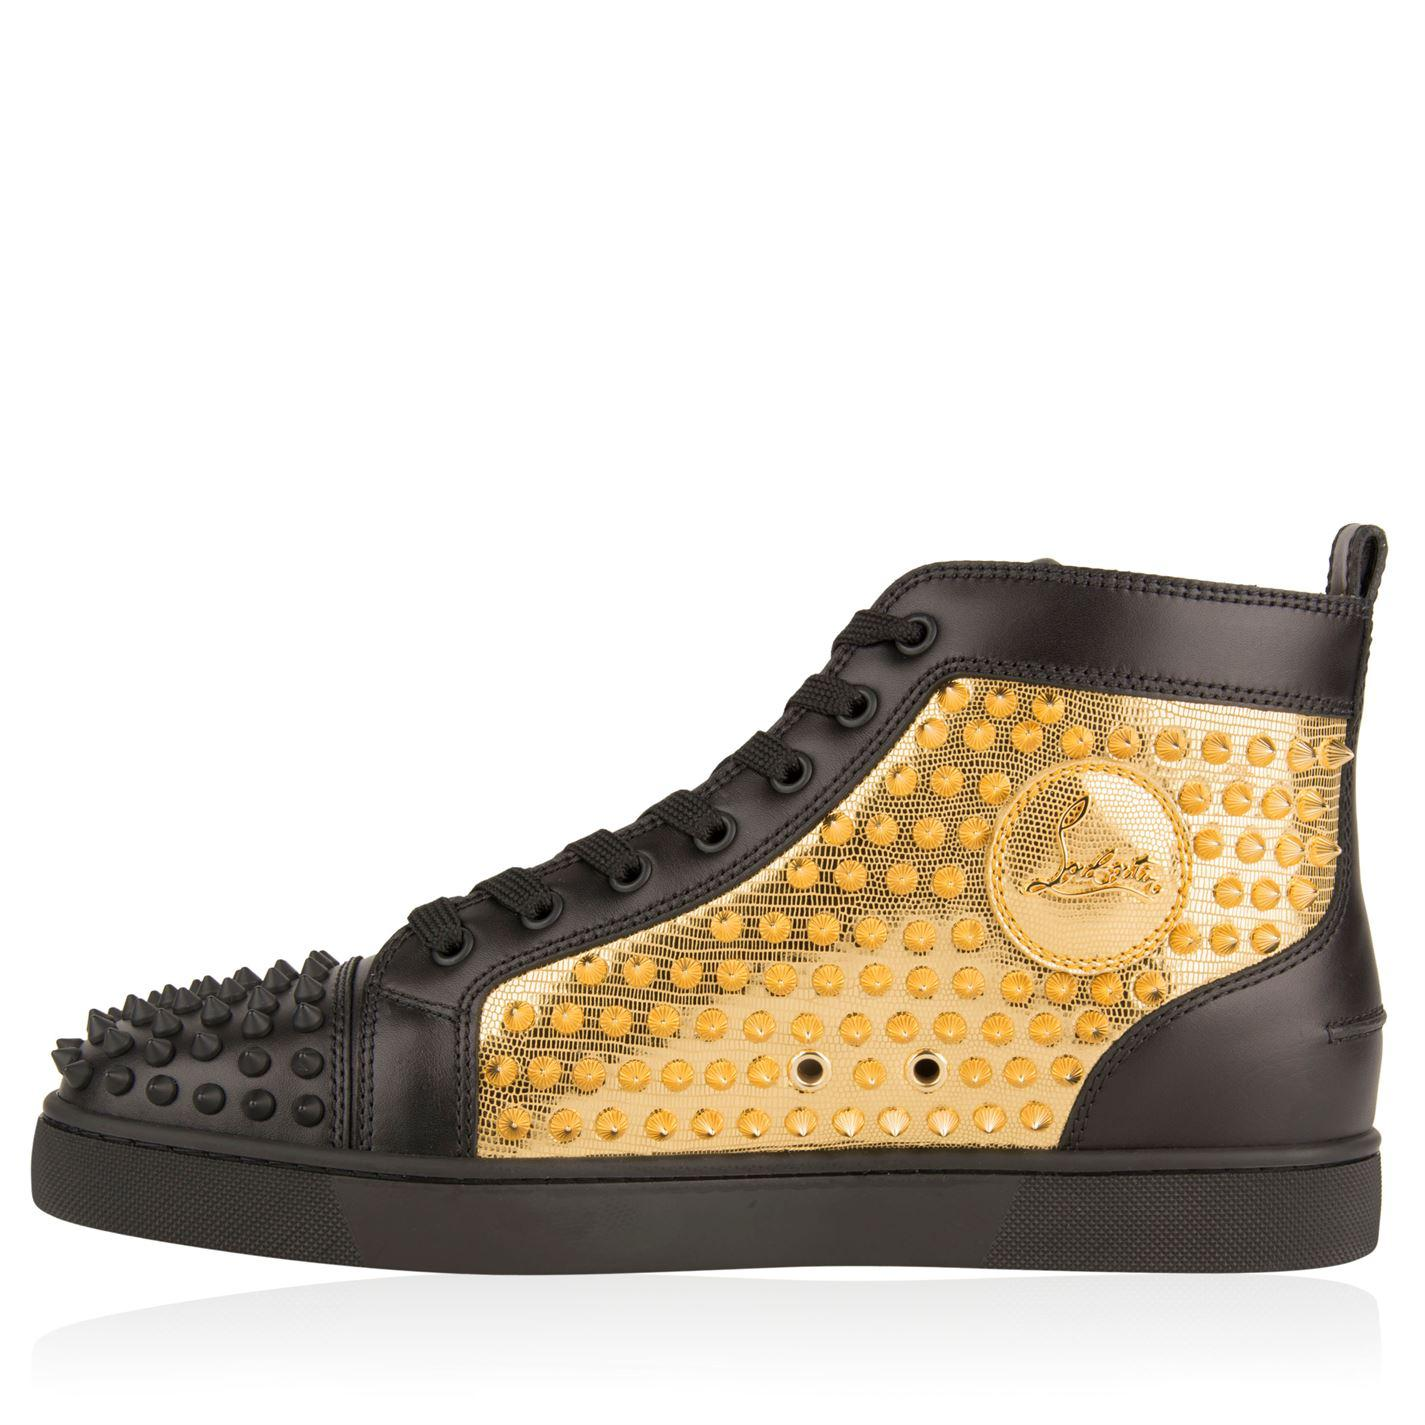 lowest price 08eb4 675bc Christian Louboutin Leather Yang Spike High Top Trainers in ...